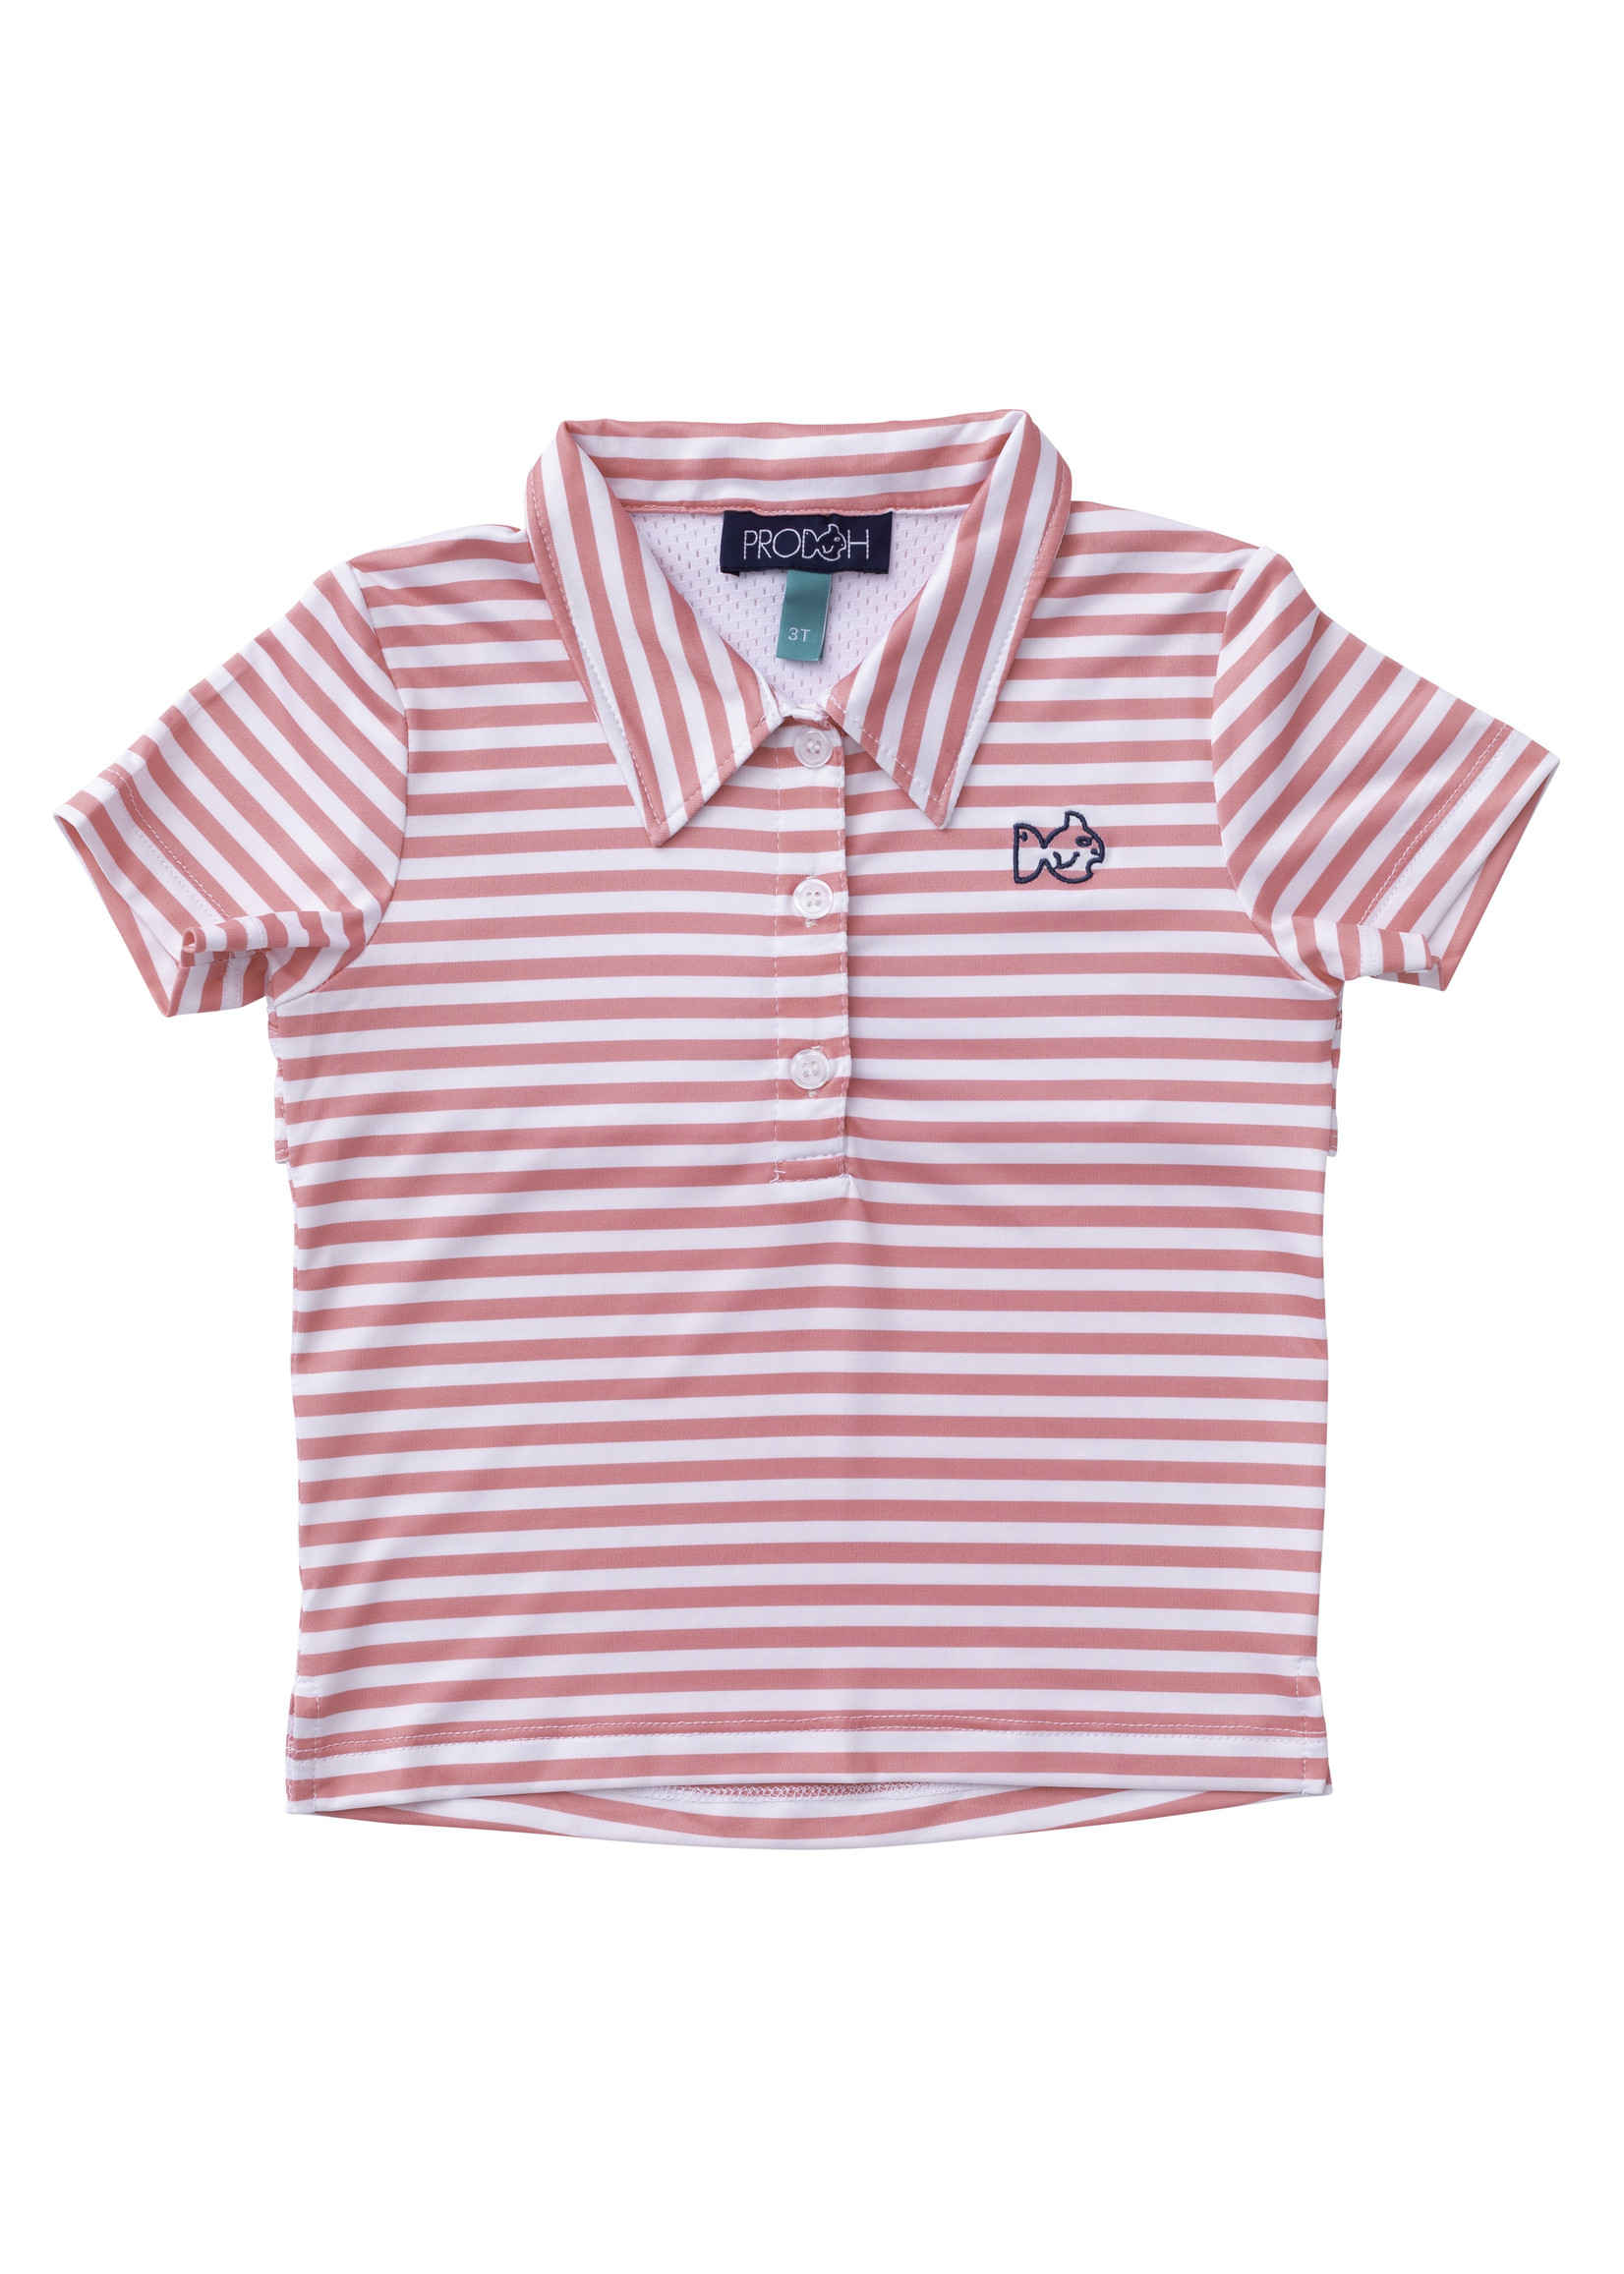 FLAMINGO PINK PERFORMANCE POLO